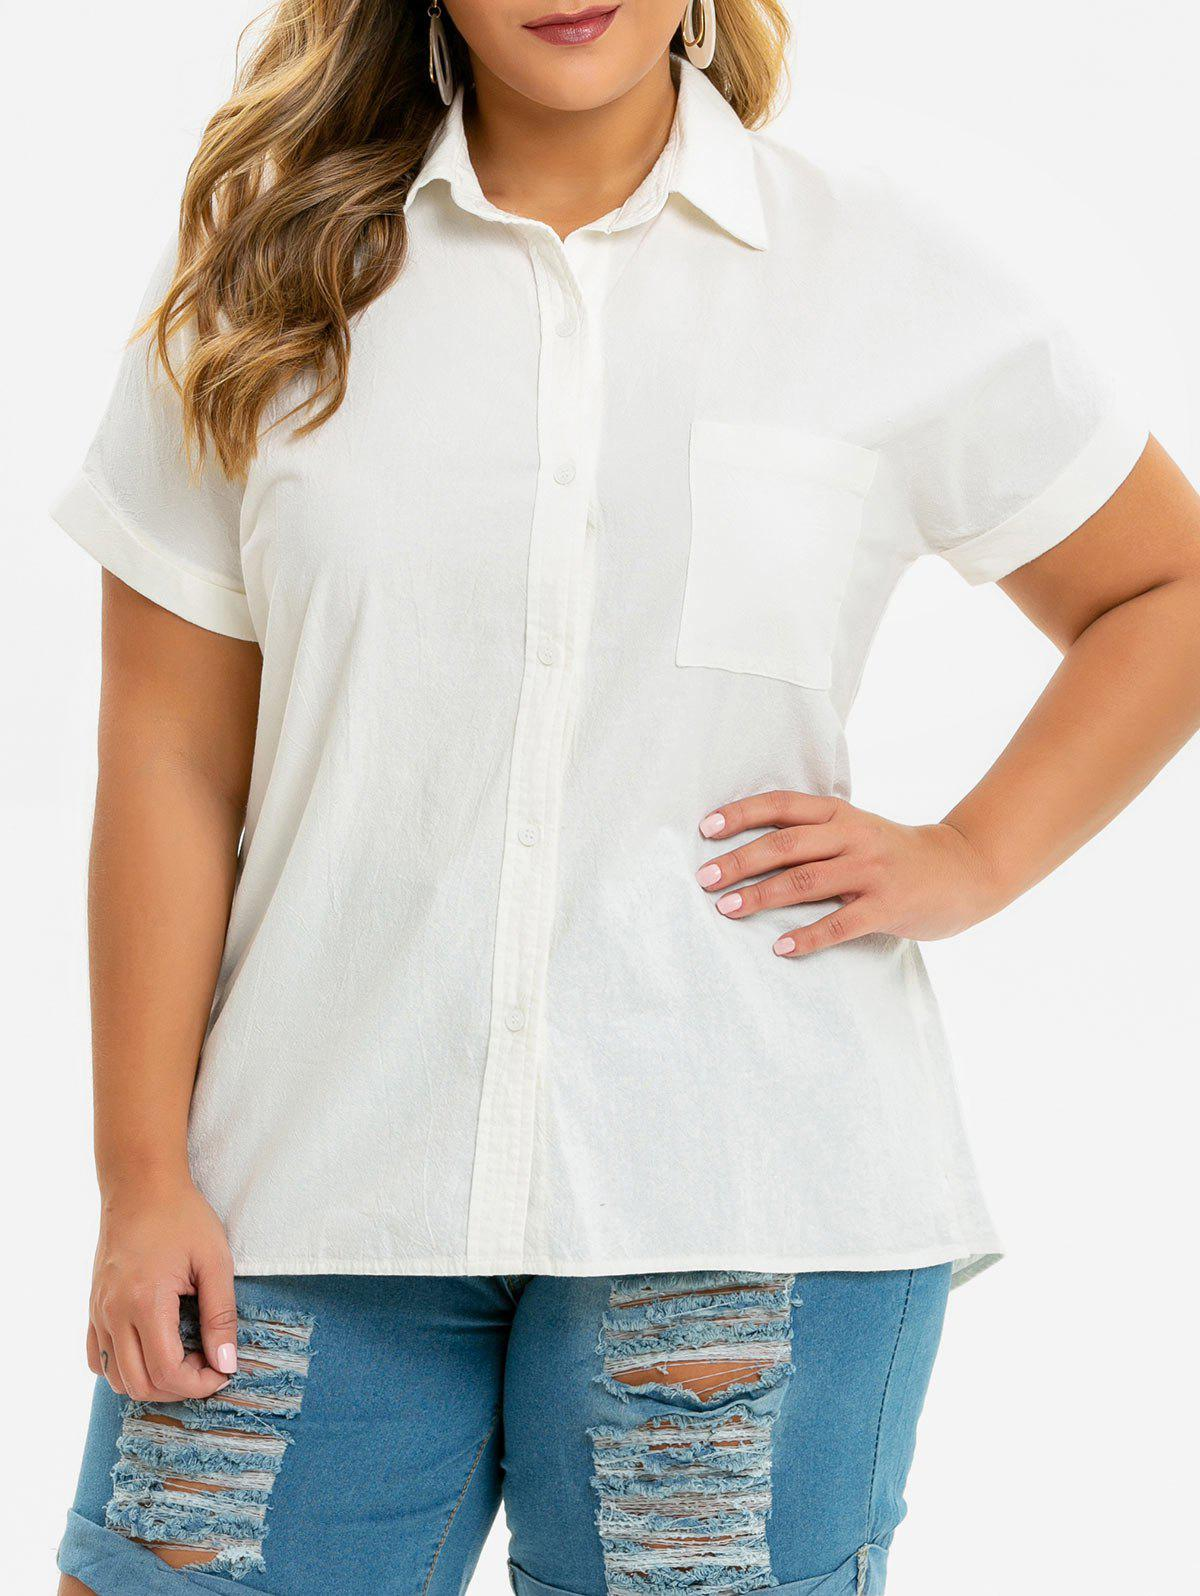 e570f30e52854e 49% OFF] Button Down Cuffed Sleeve Front Pocket Plus Size Shirt ...